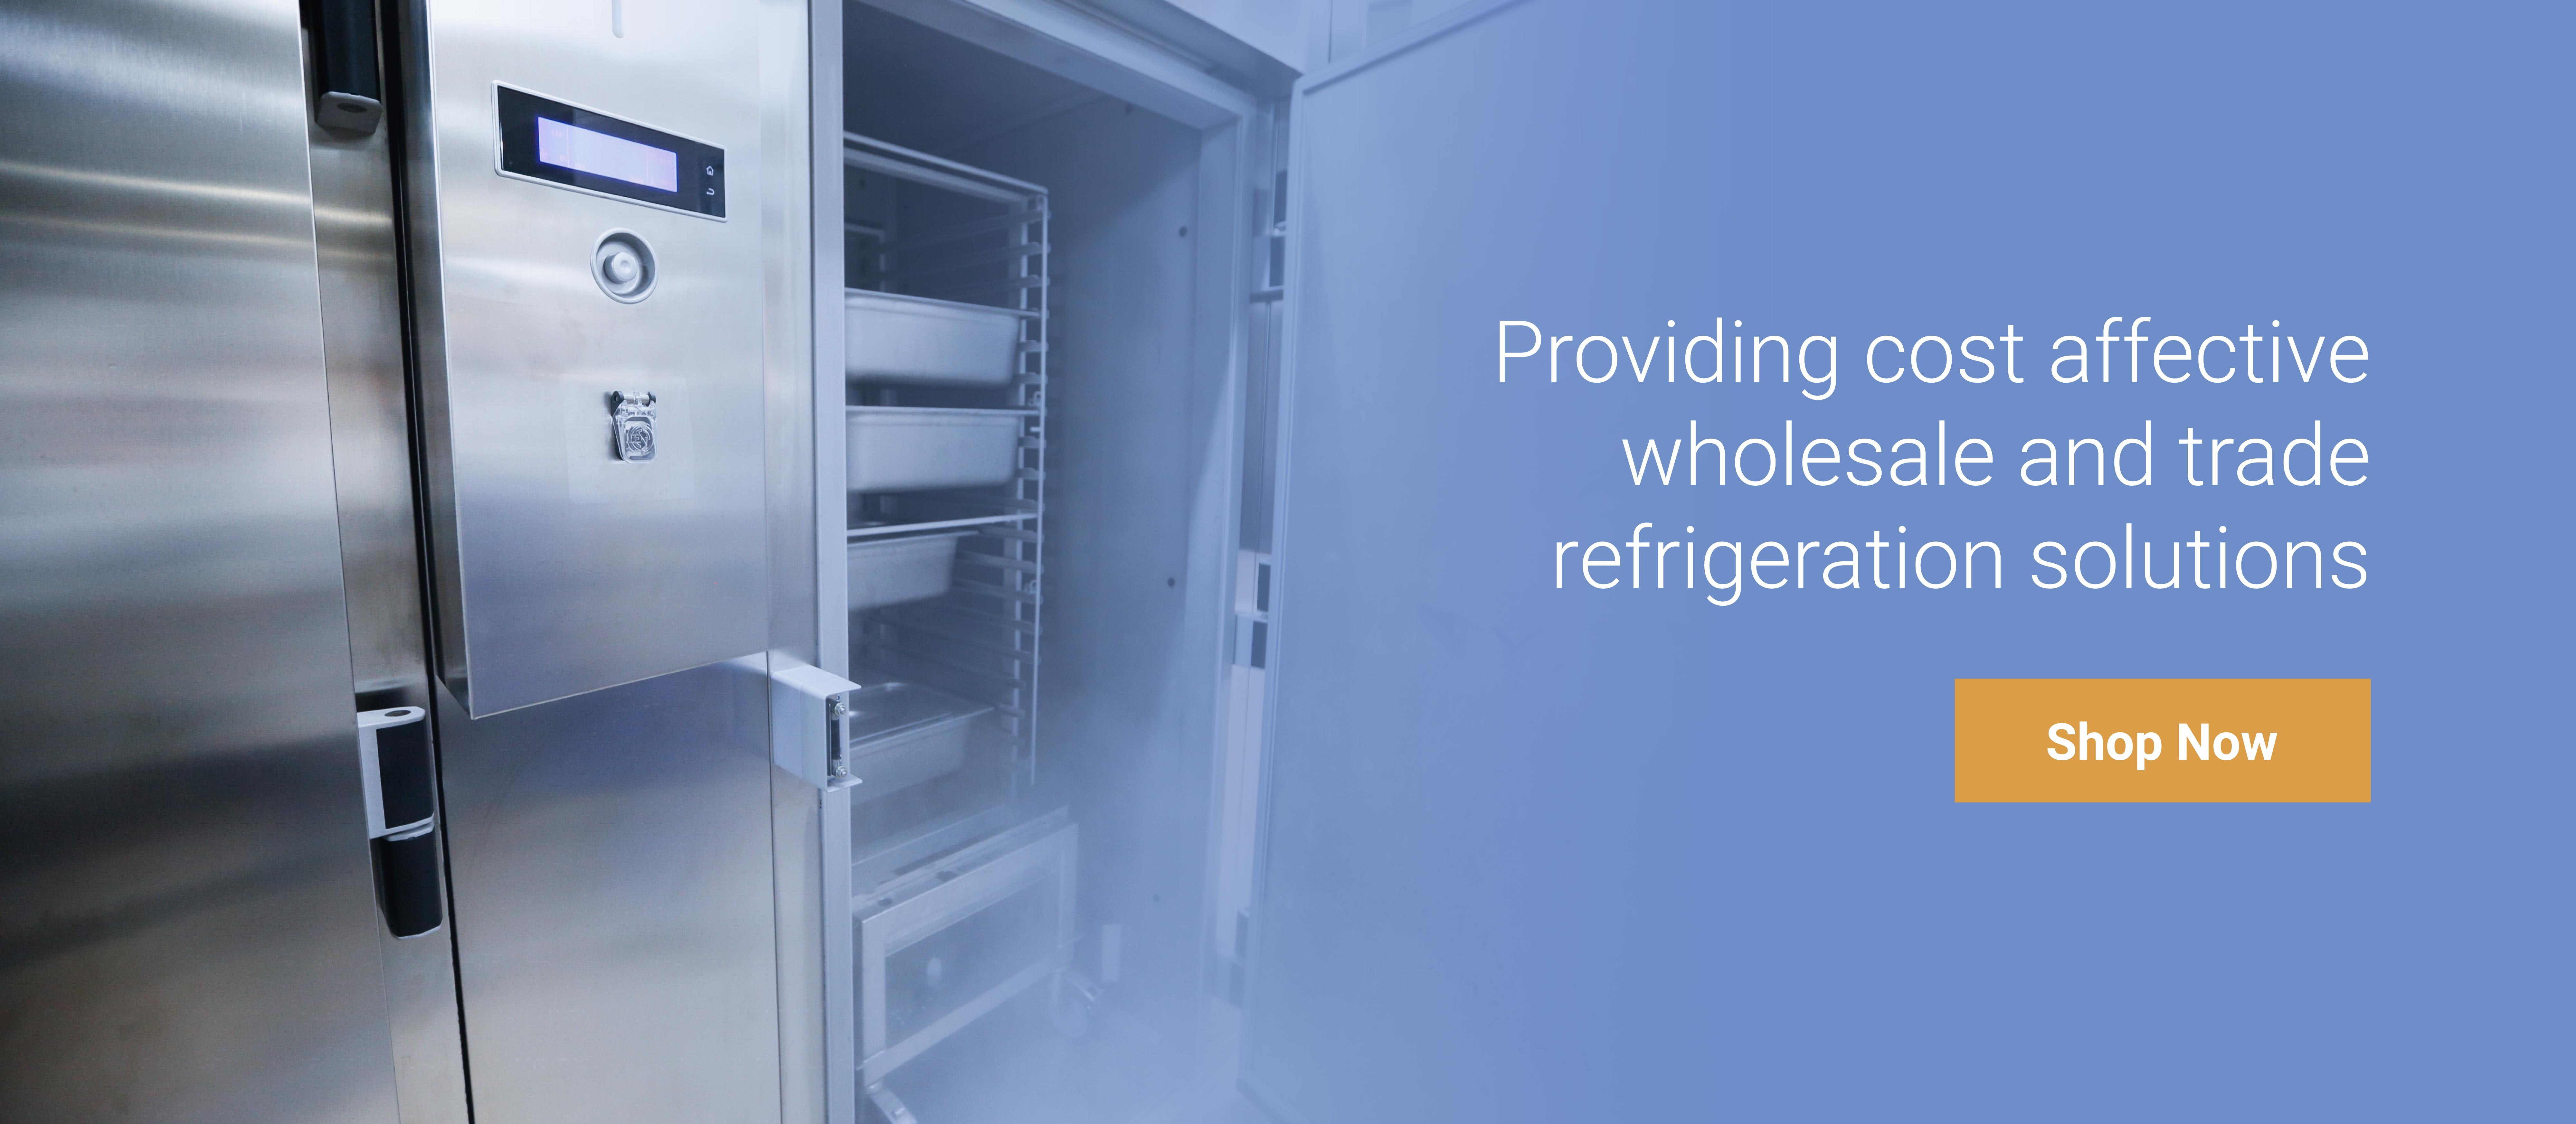 Cost affective wholesale & trade refrigeration solutions